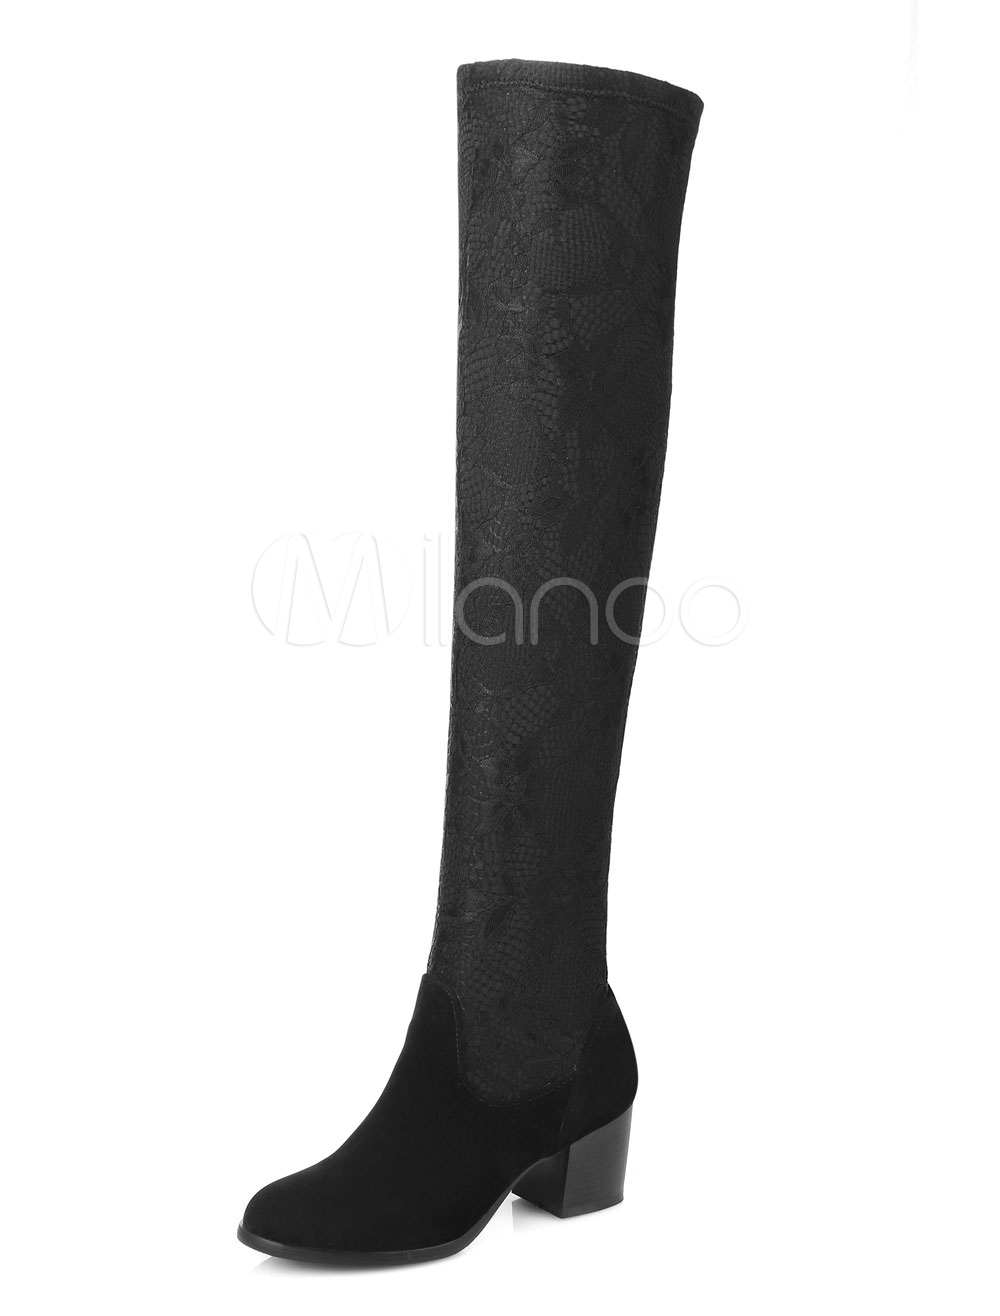 Black Stretch Boots Women's Chunky Middle Heel Over Knee Boots